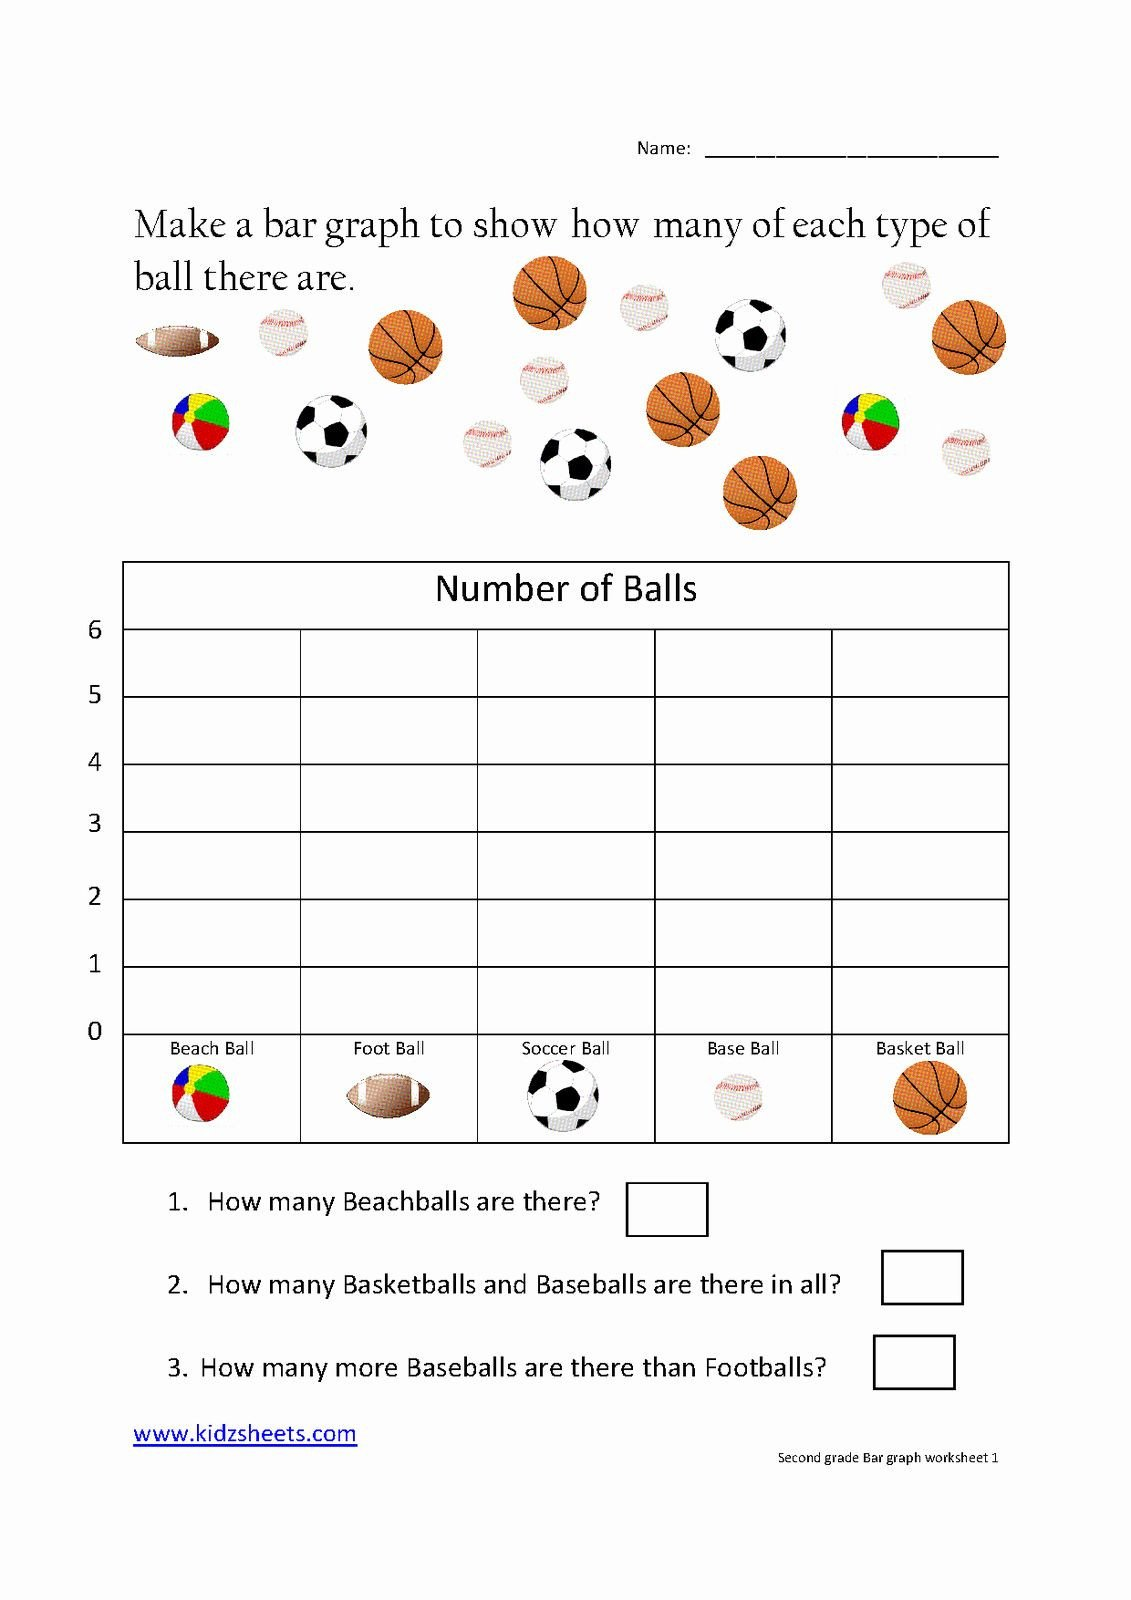 Graphing Worksheets for First Grade Free Bar Graph Worksheets Unique Kidz Worksheets Second